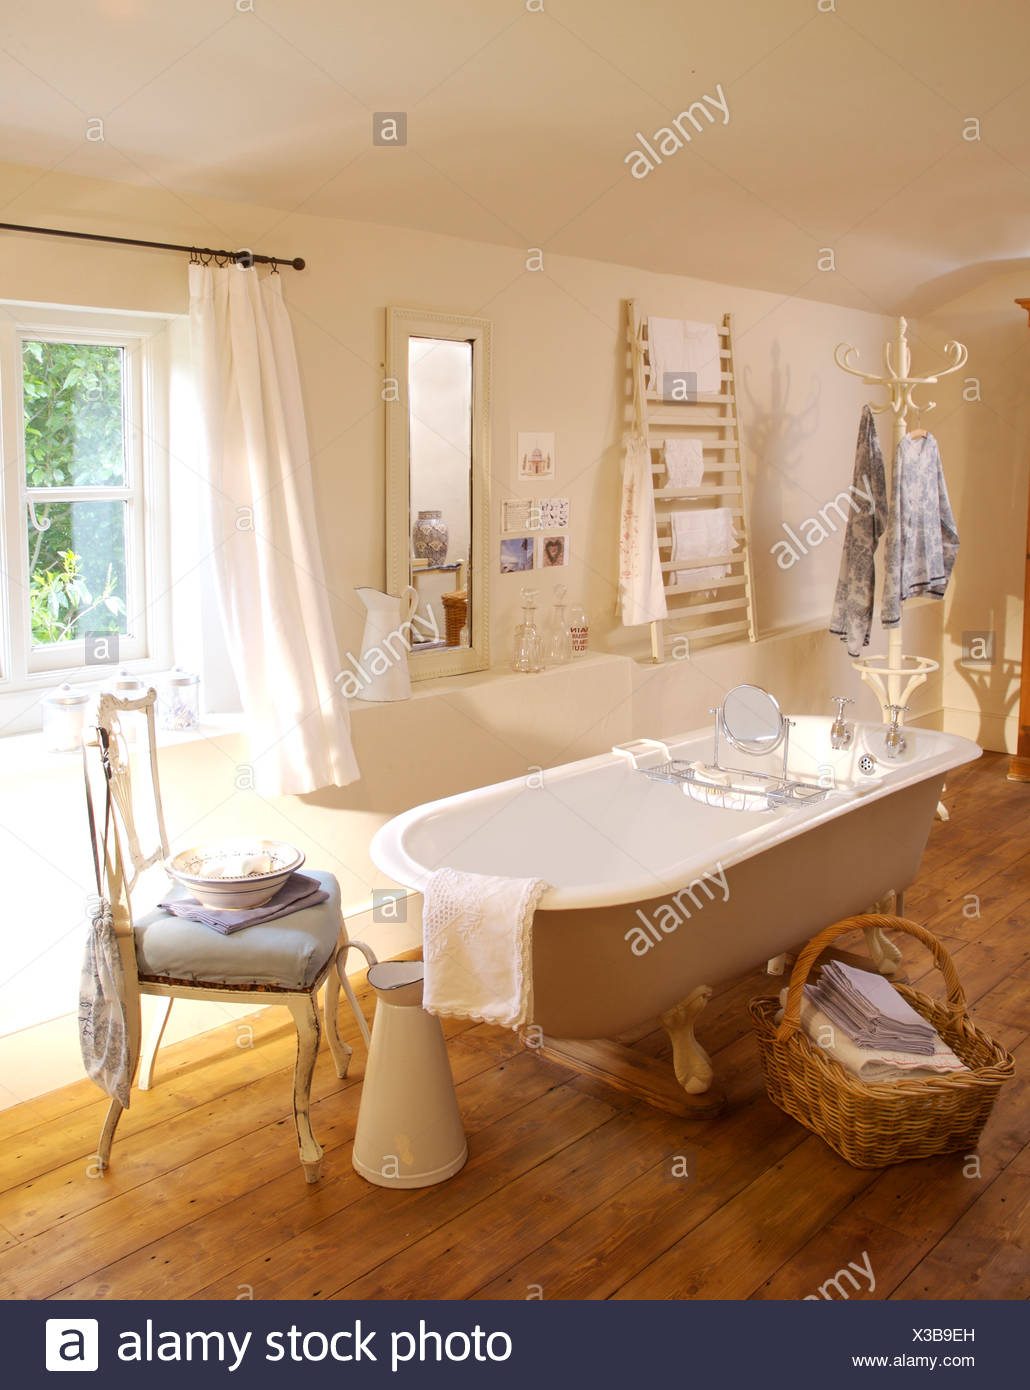 Towels In Large Basket Beside Roll Top Bath In Country Bathroom With Wooden  Floor And White Chair